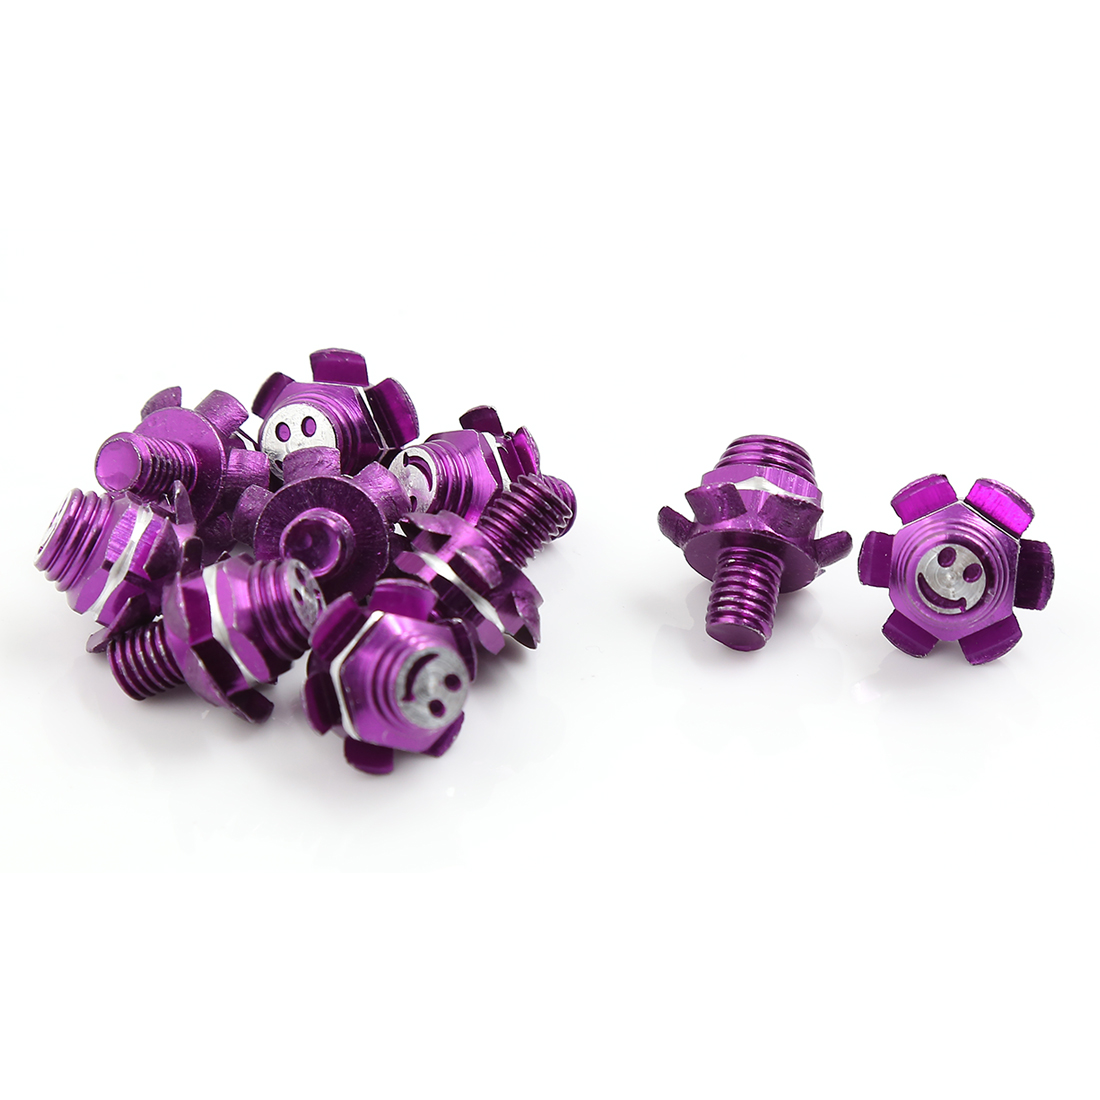 10 Pcs Purple Flower Shaped Smiling Face Print Motorcycle License Plate Frame Bolts Screws 24mm x 8mm